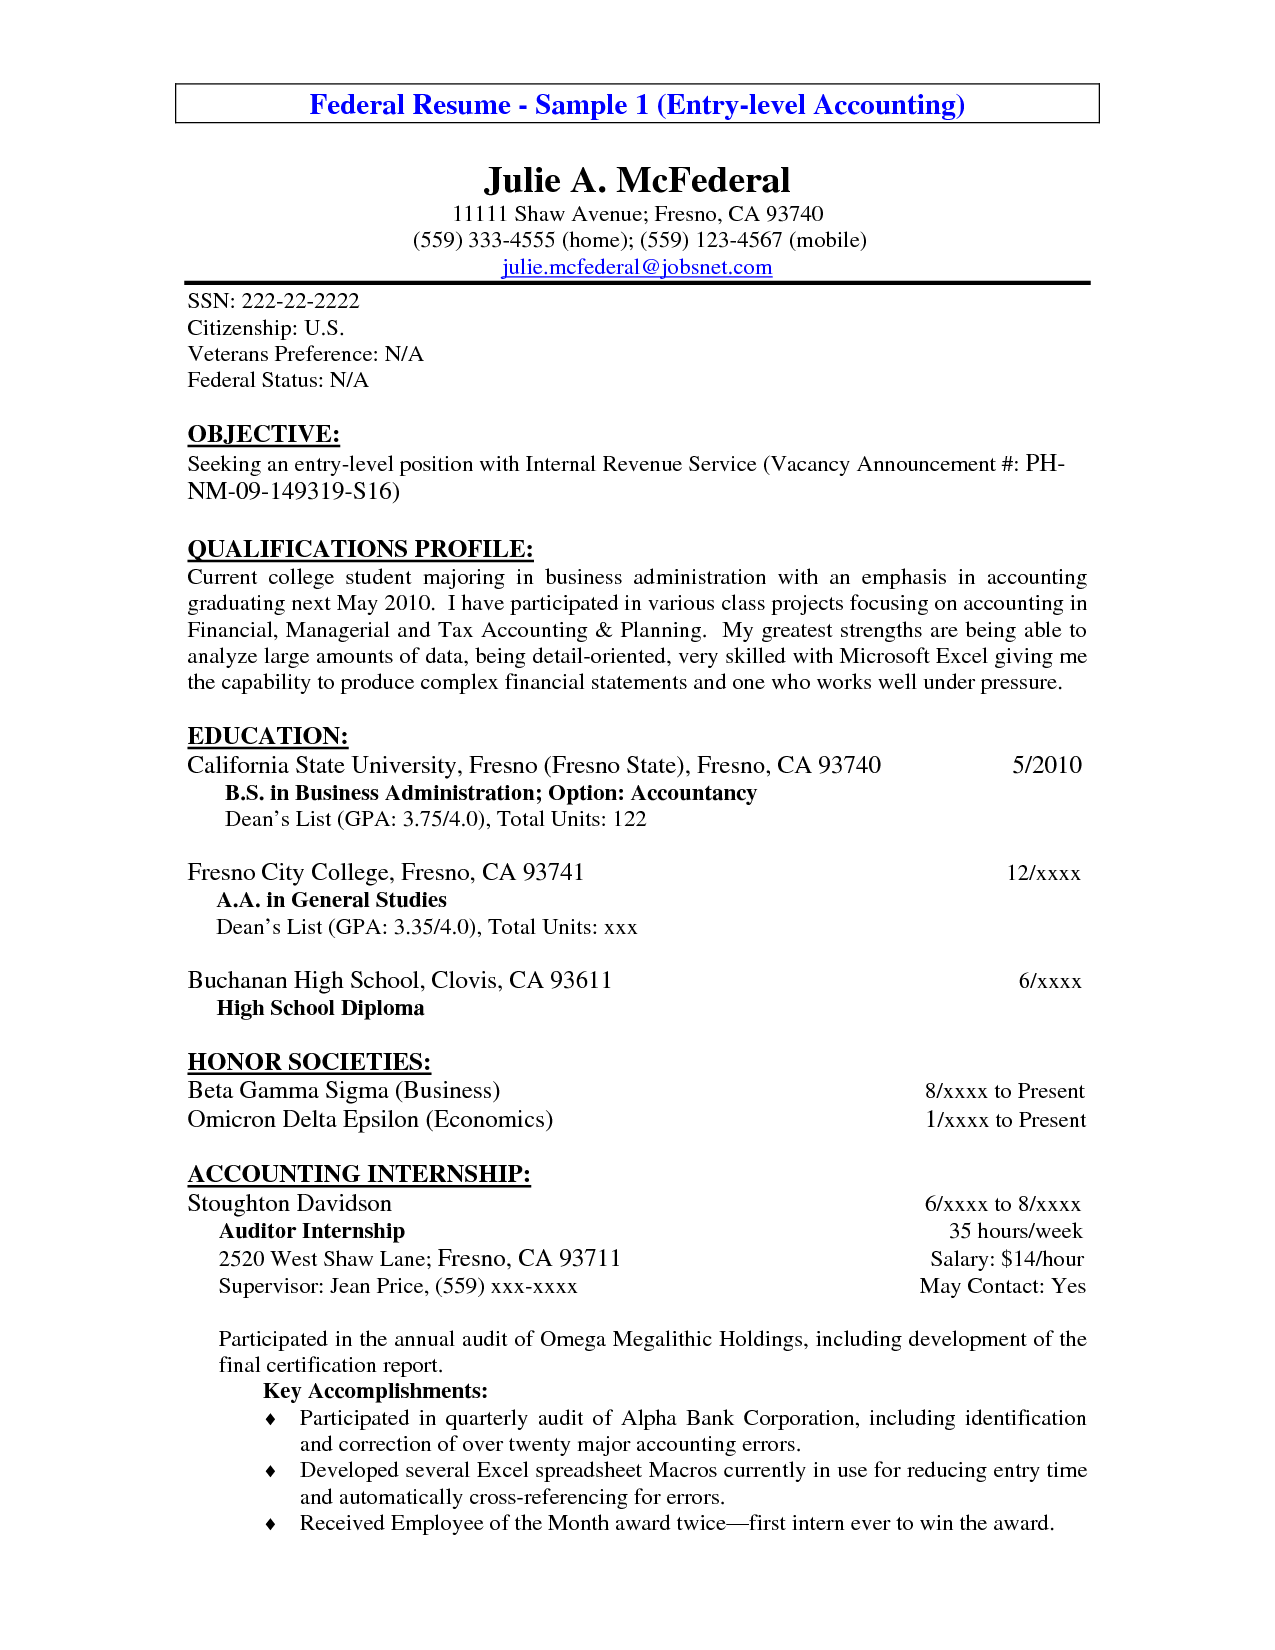 sample resume without objective swim instructor cover letter